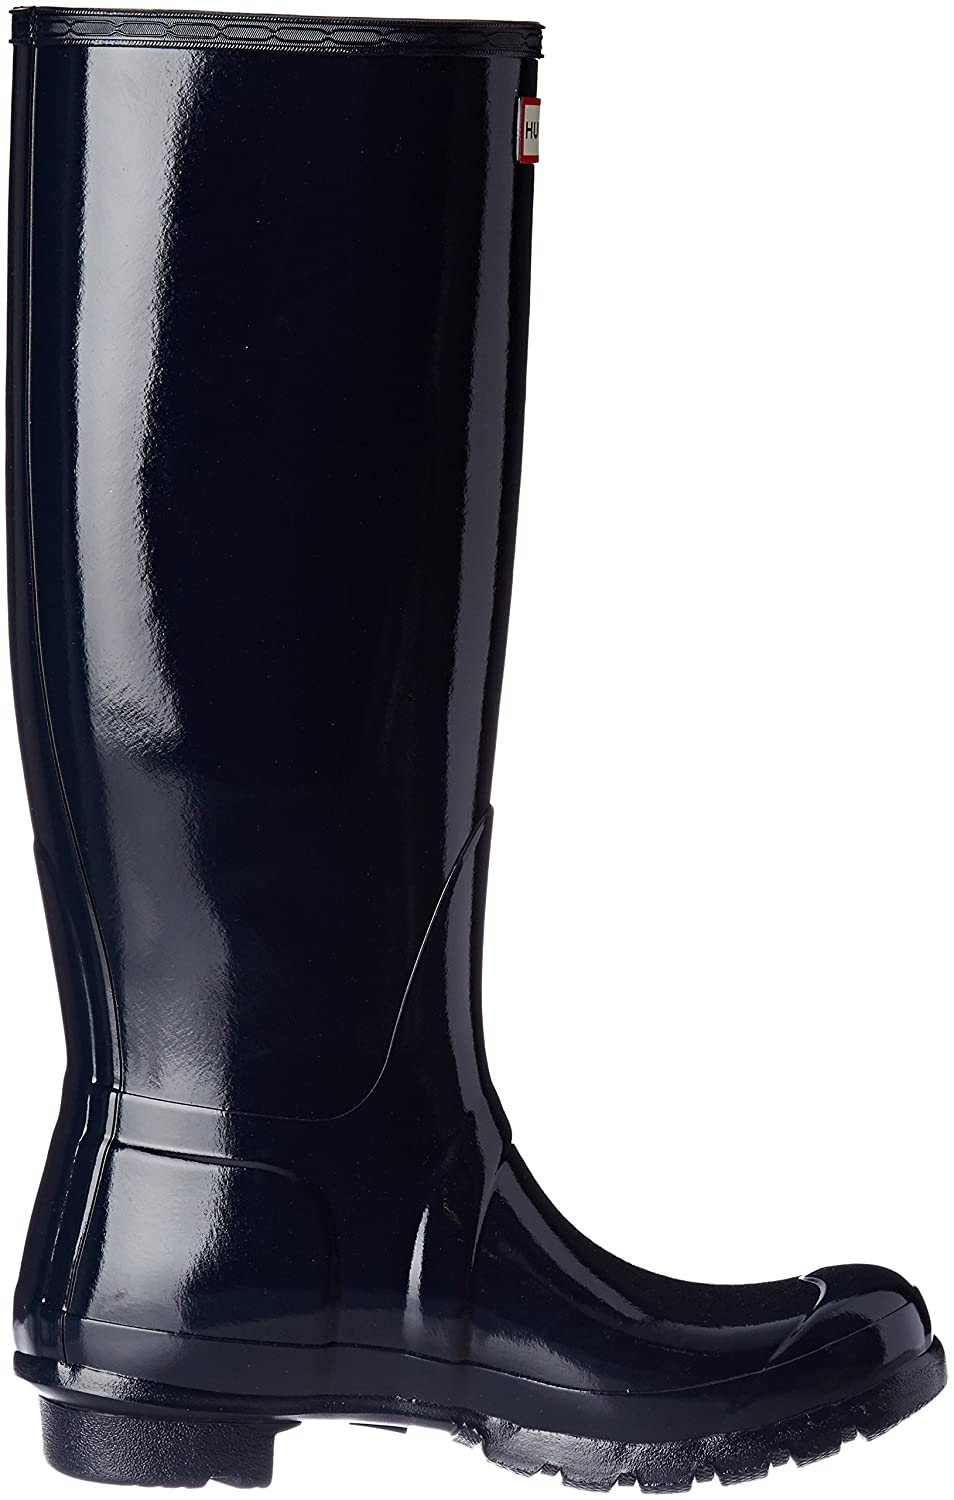 Hunter Women's Original Tall Rain Boot B00NMAFALO 7 B(M) US|Navy Gloss